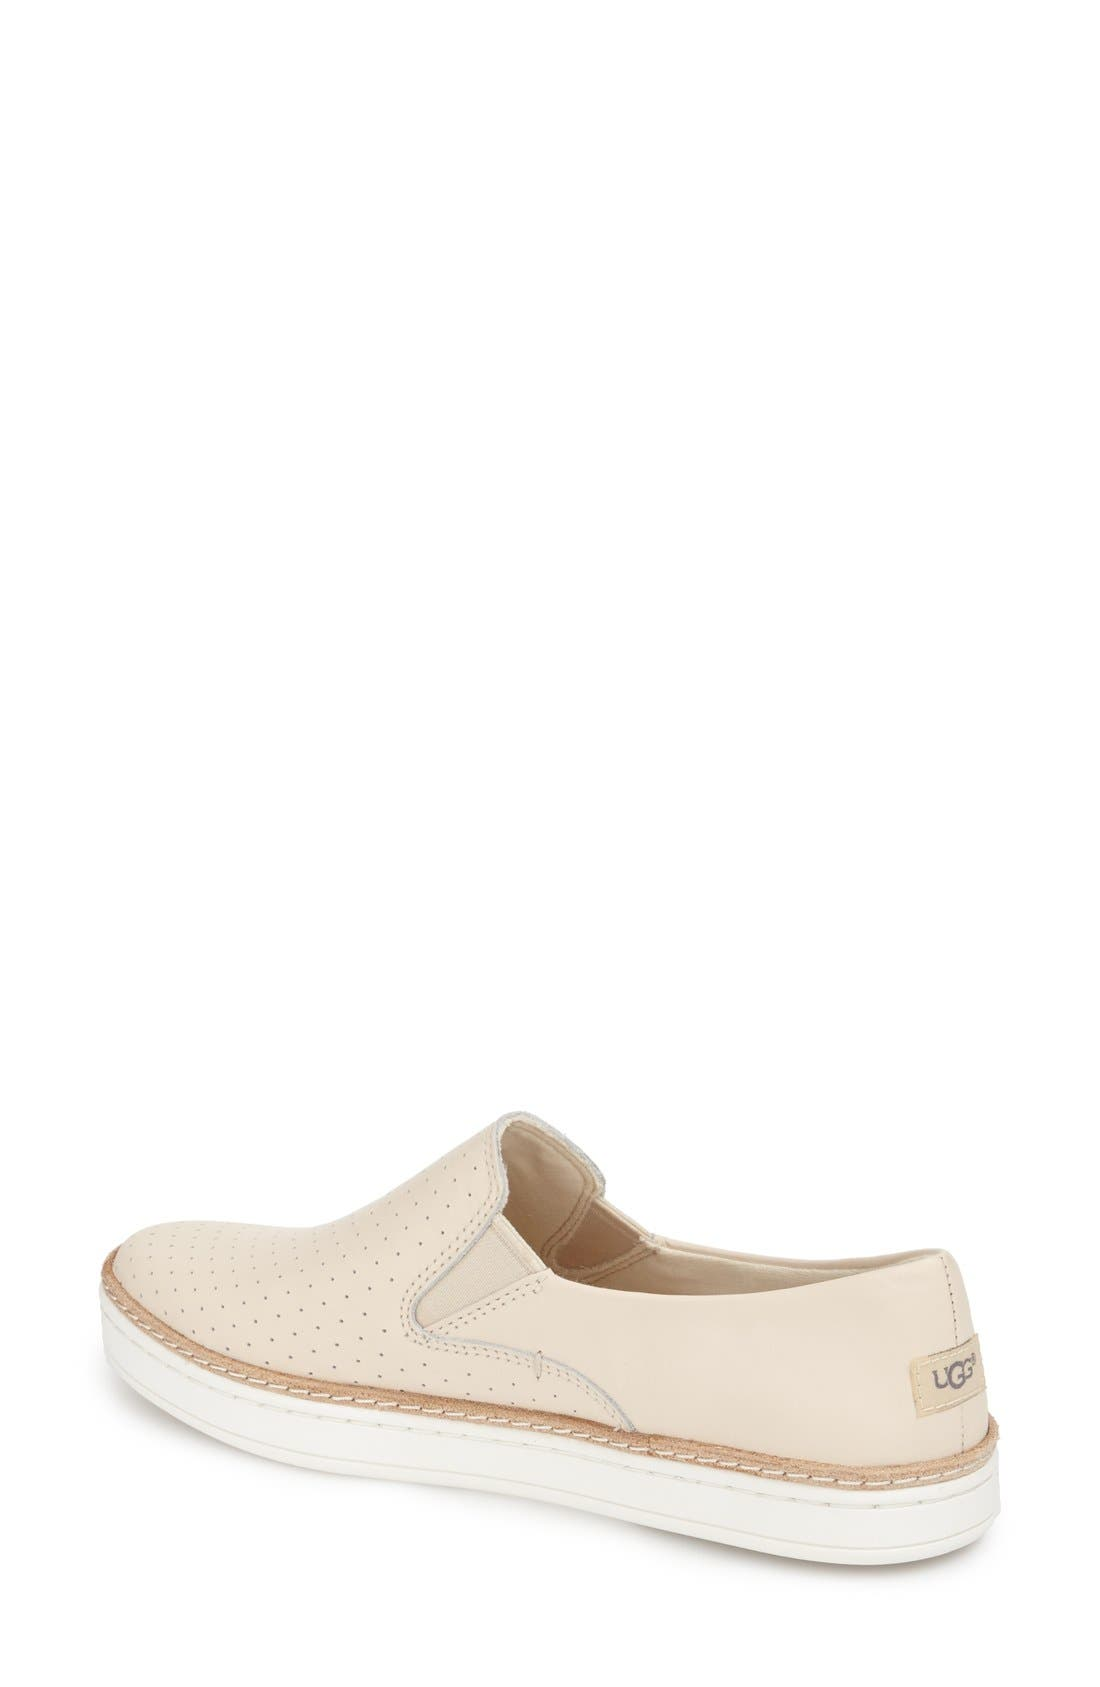 Alternate Image 2  - UGG® 'Keile' Perforated Sneaker (Women)